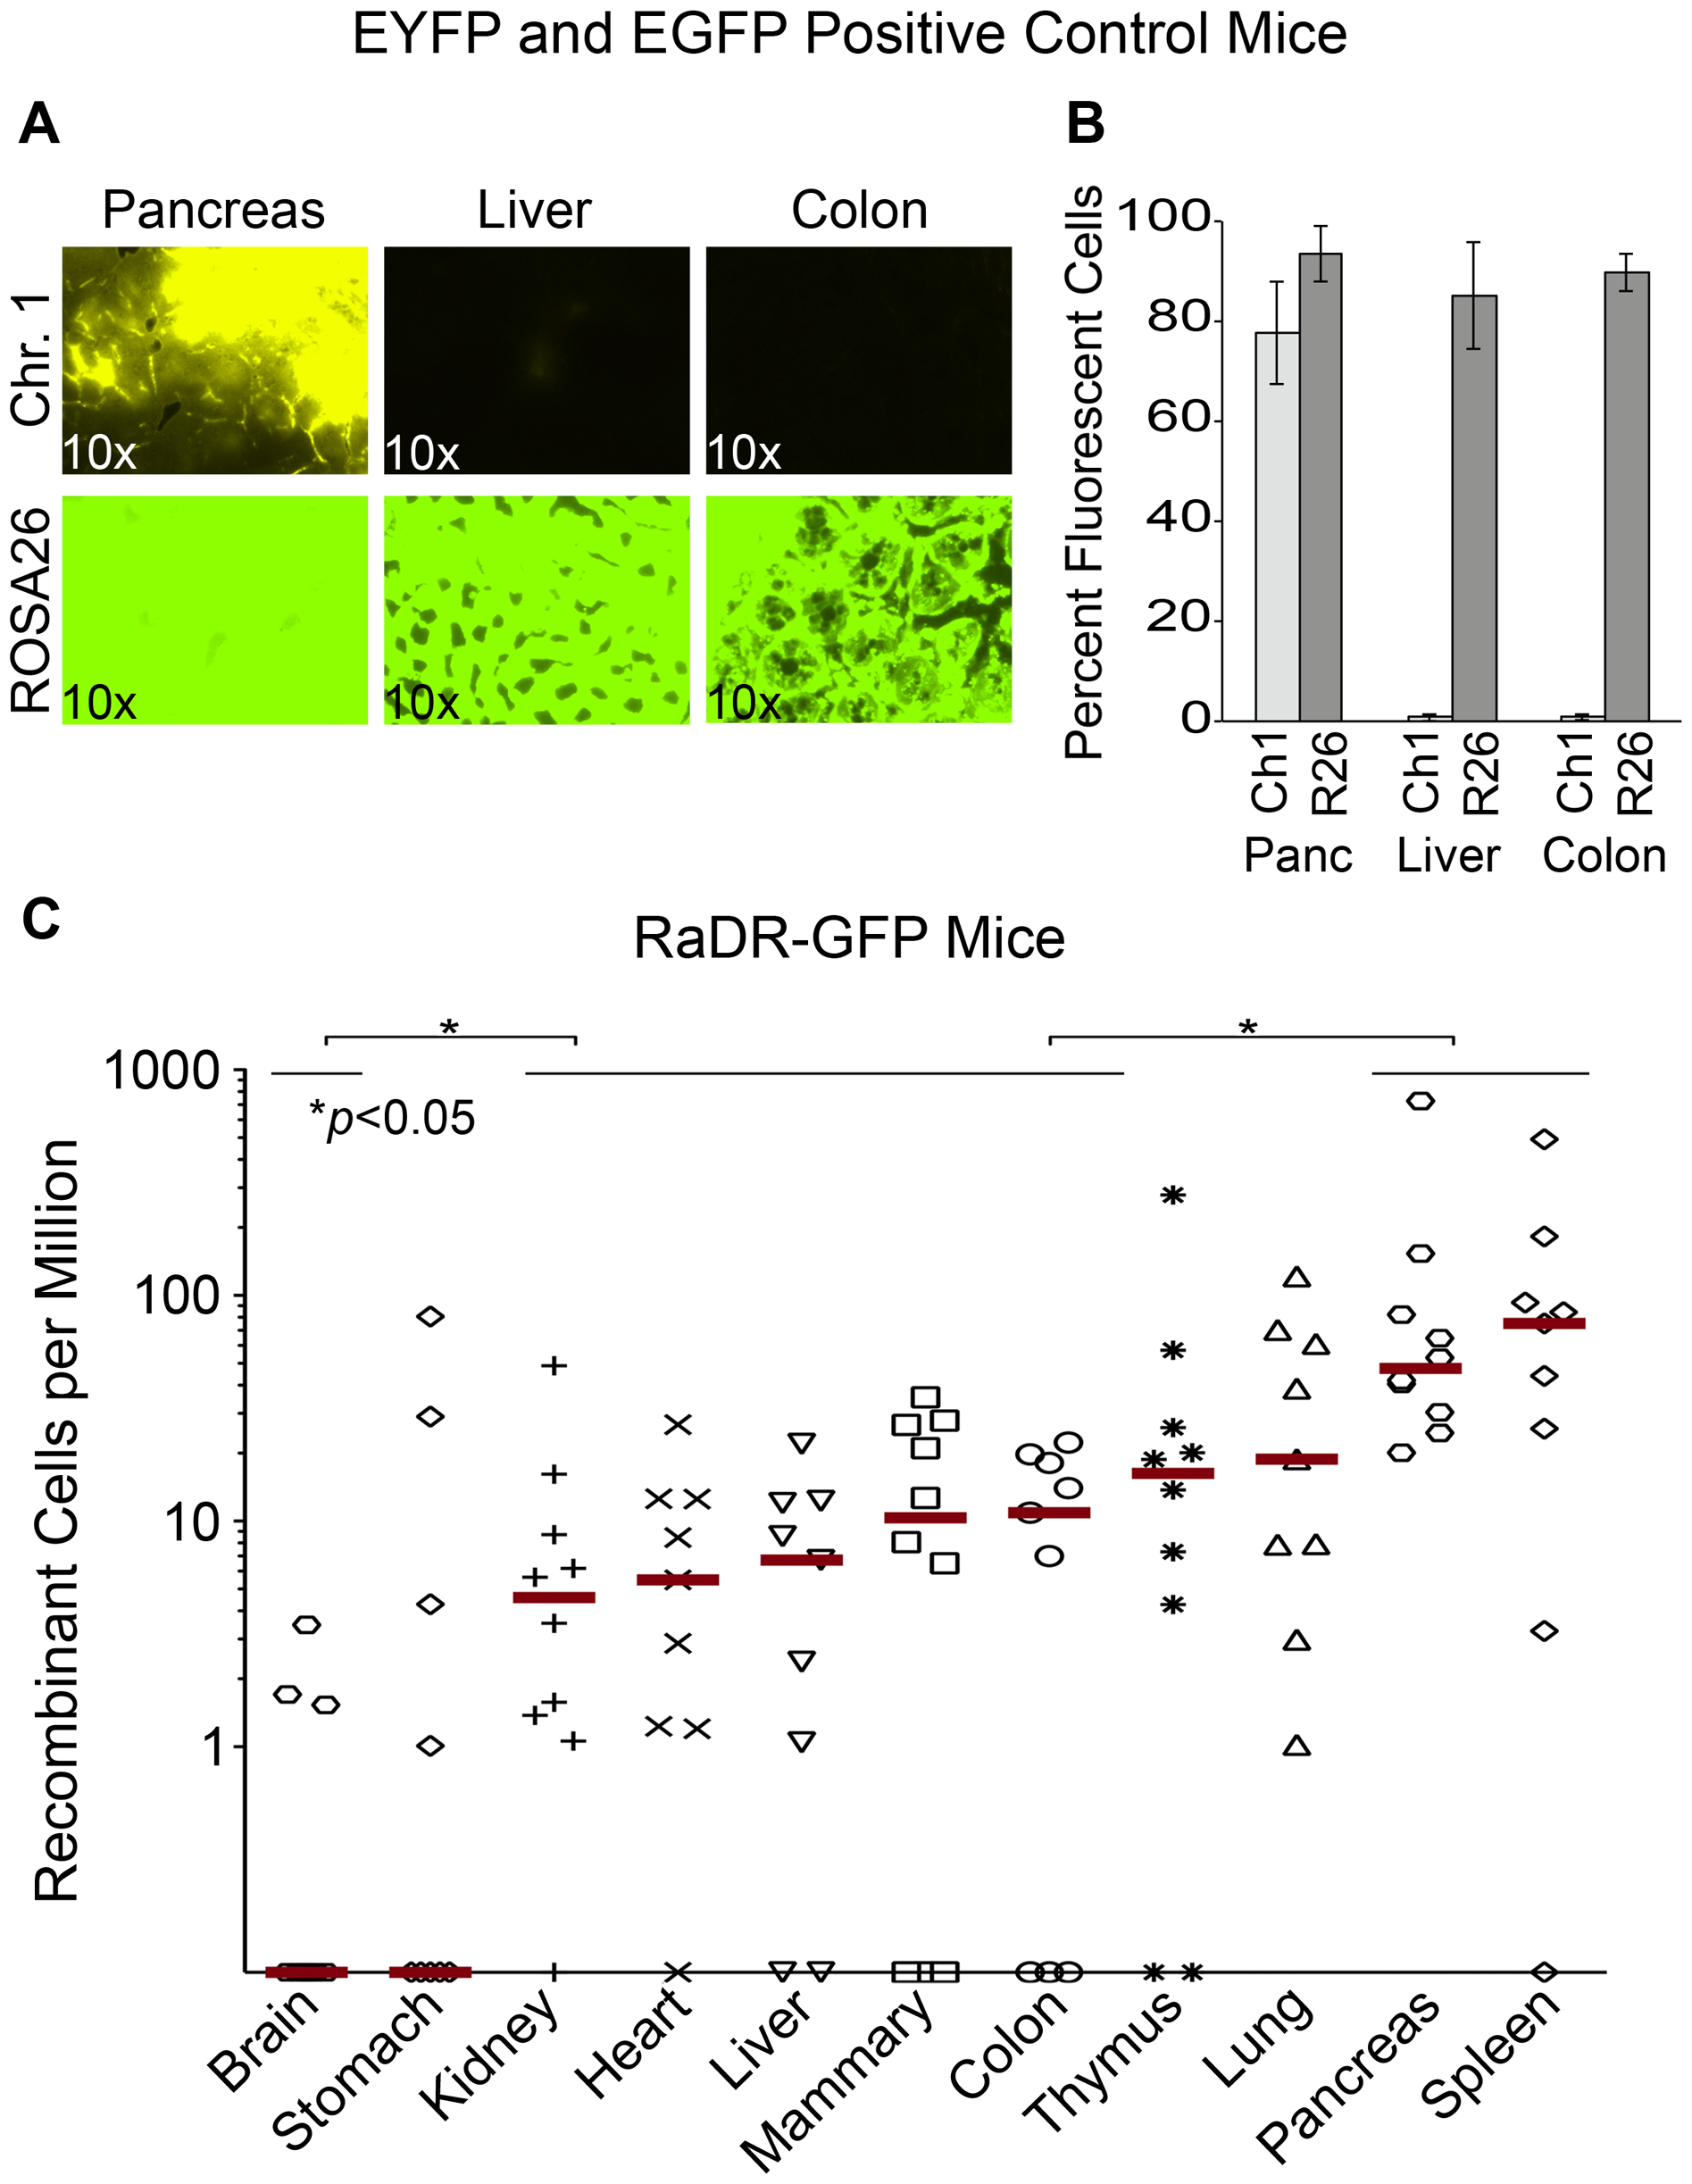 Analysis of EYFP and EGFP positive control mice and RaDR-GFP tissues.